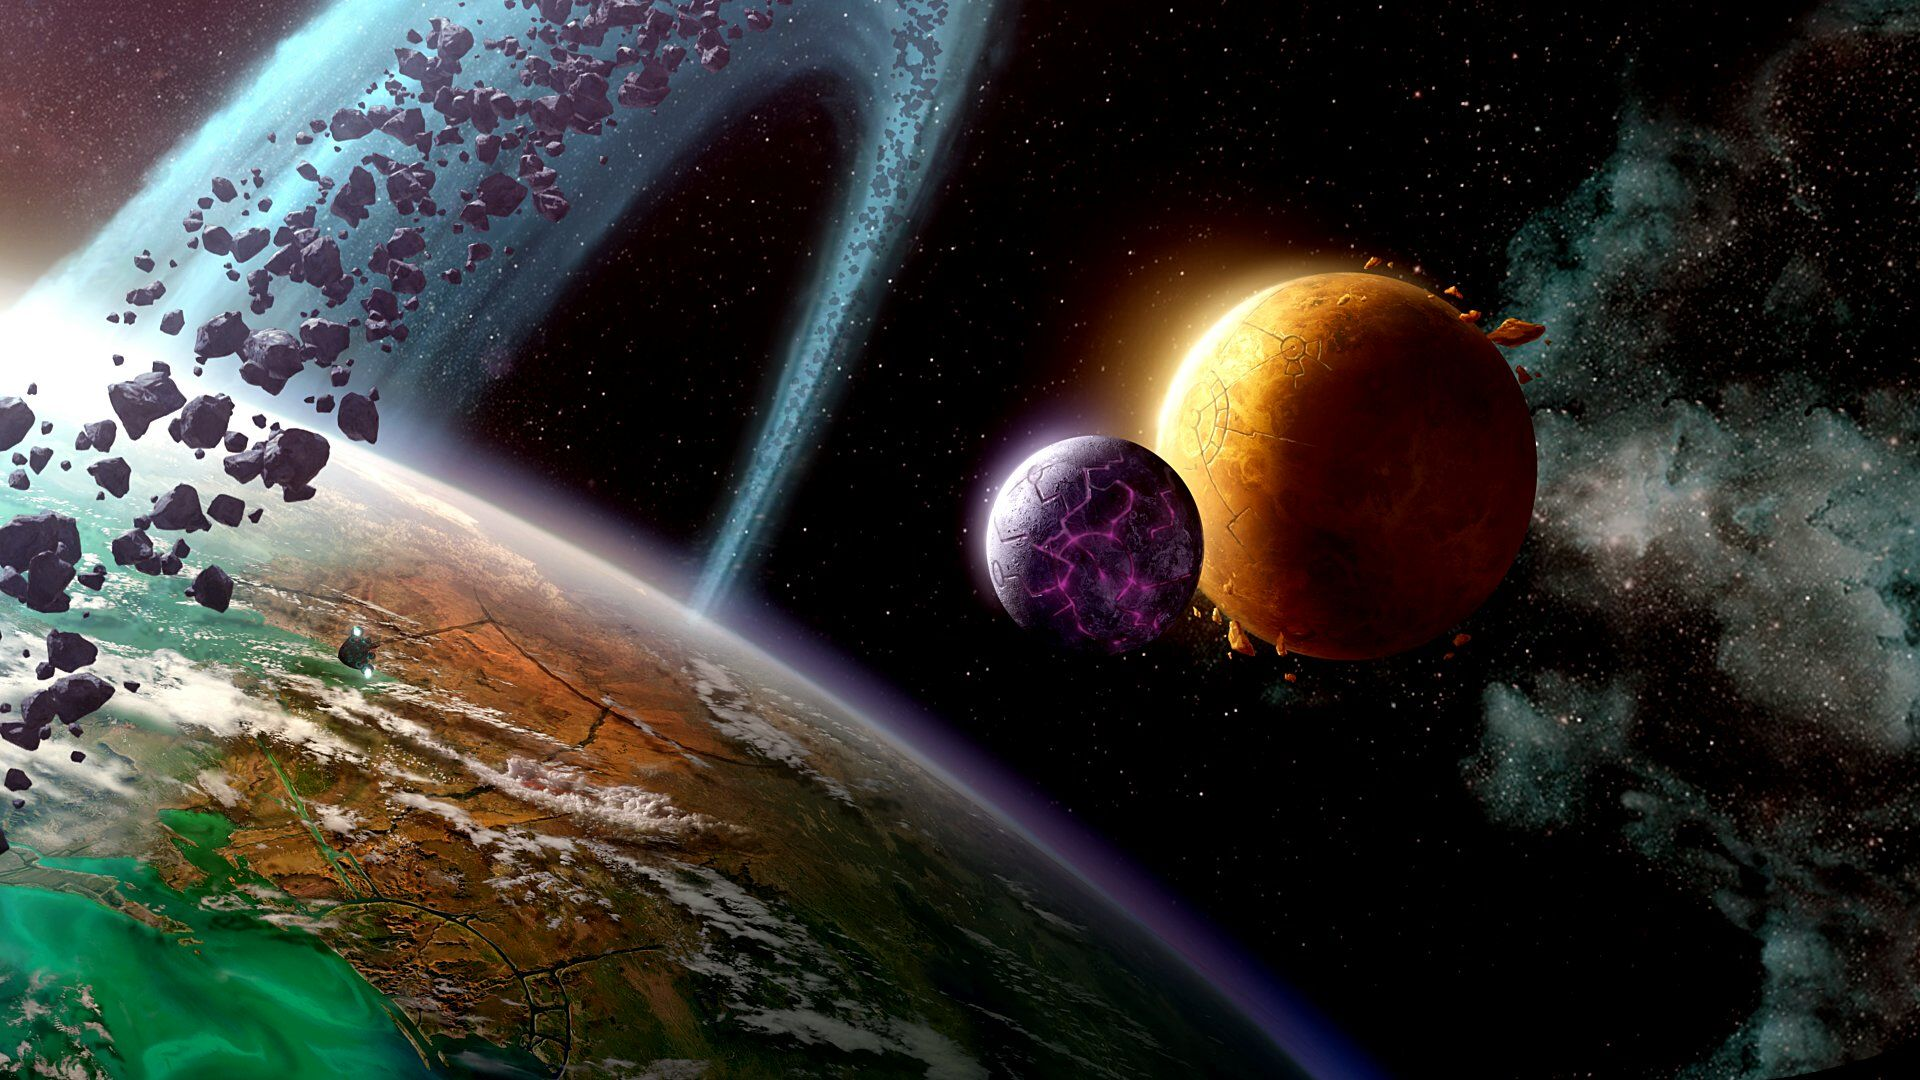 in space hd wallpaper is an HD wallpaper posted in